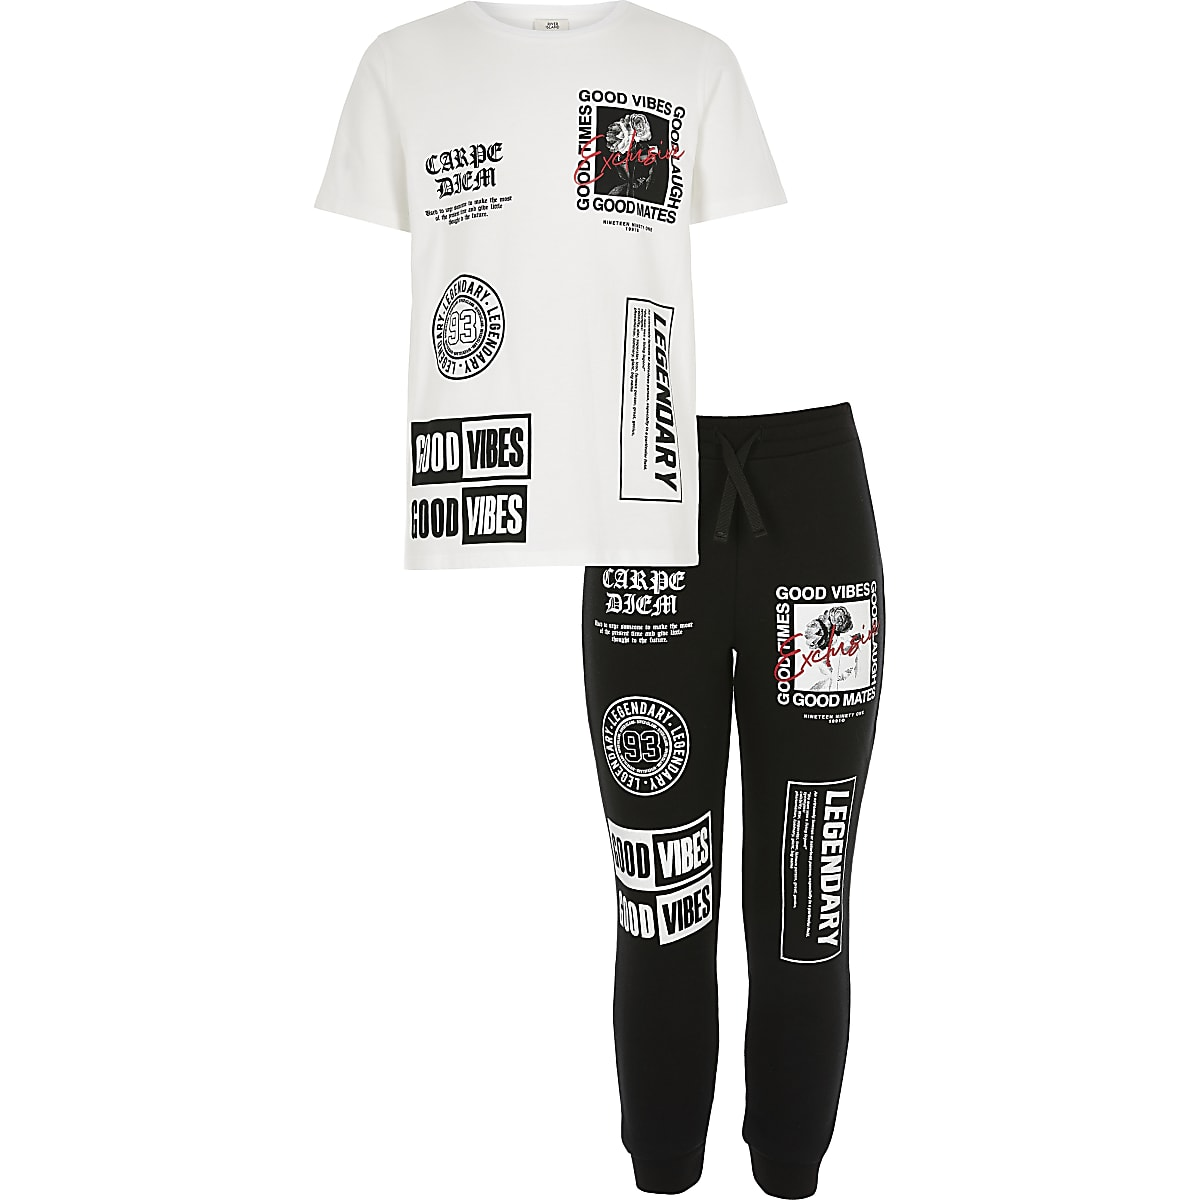 Boys white 'Good vibes' jogger outfit